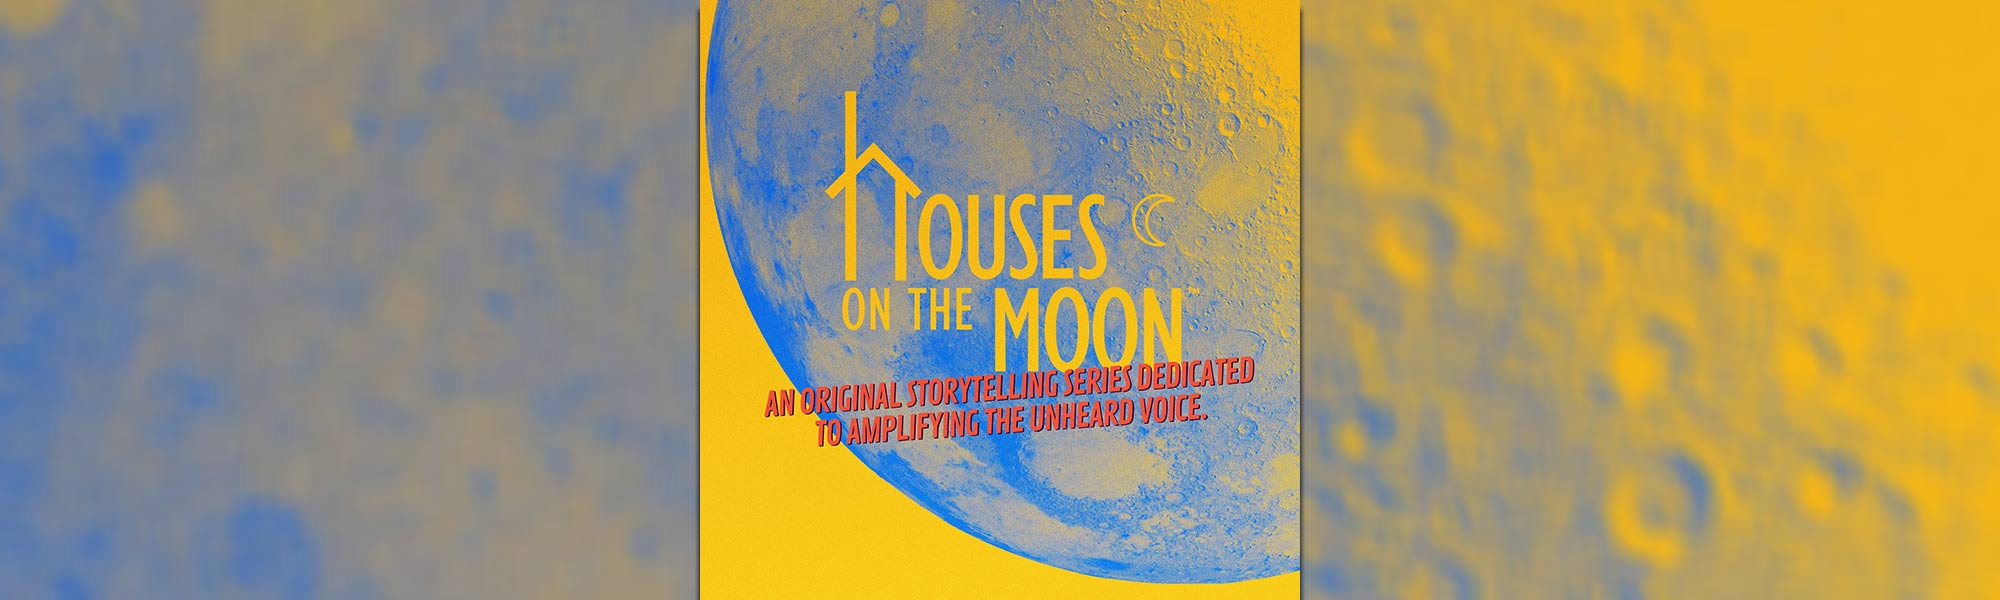 Houses on the Moon - banner